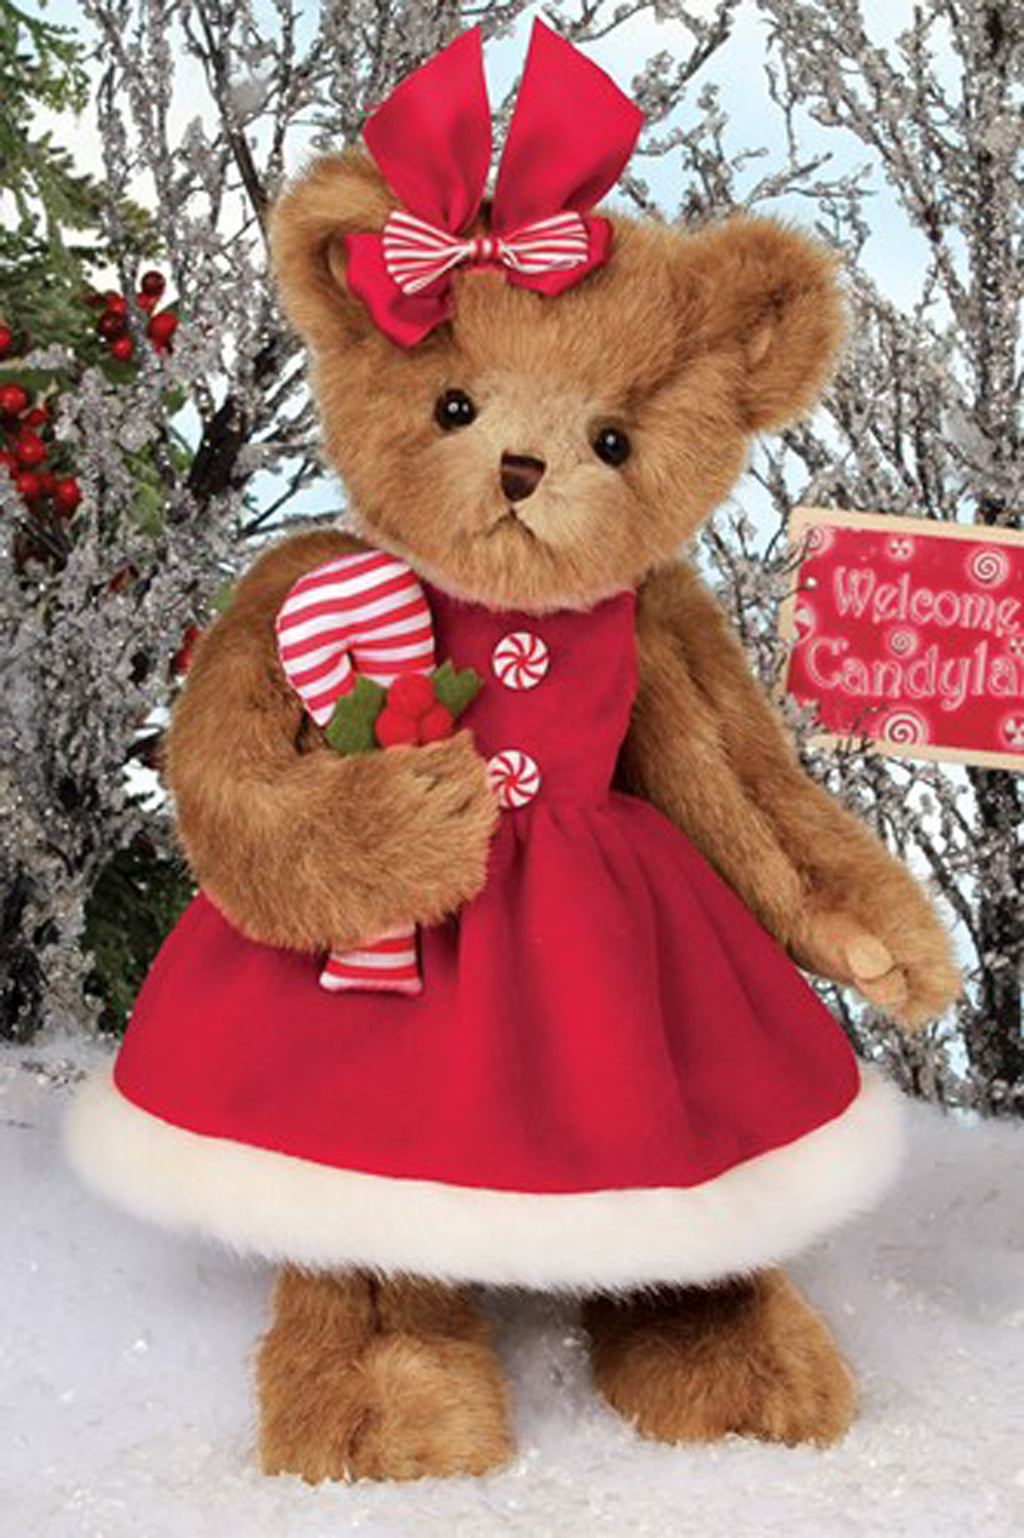 Bearington Christa Cane